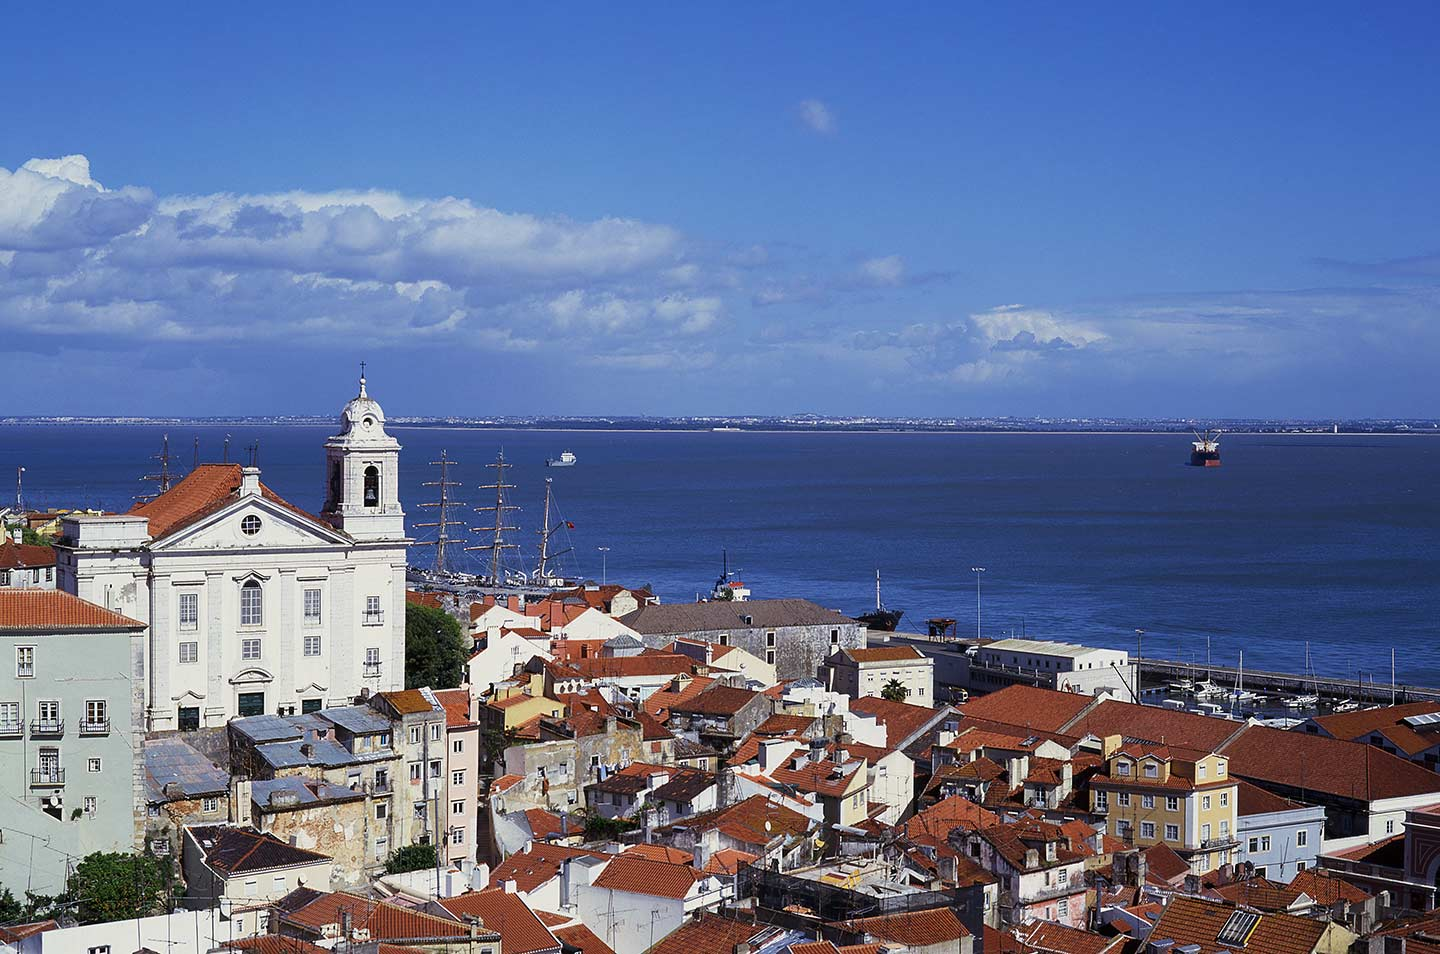 Image of the view from the Miradouro de Santa Luzia in the Alfama, Lisbon